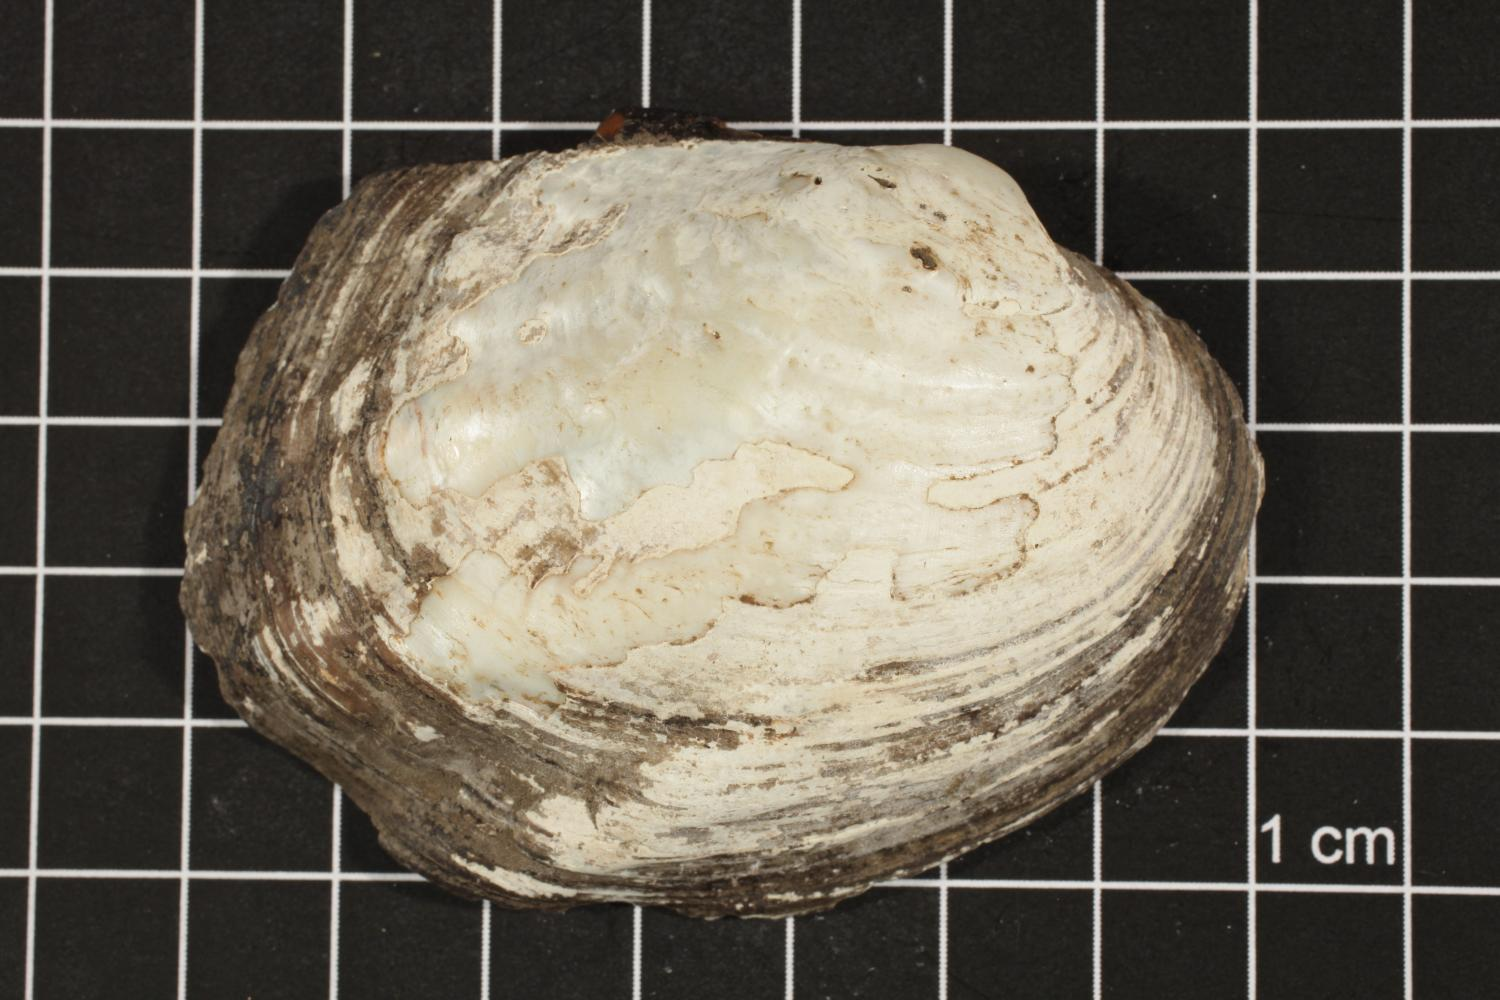 Amblema plicata, Specimen #49                                                                                                      [Sequence #]: 1 of 4